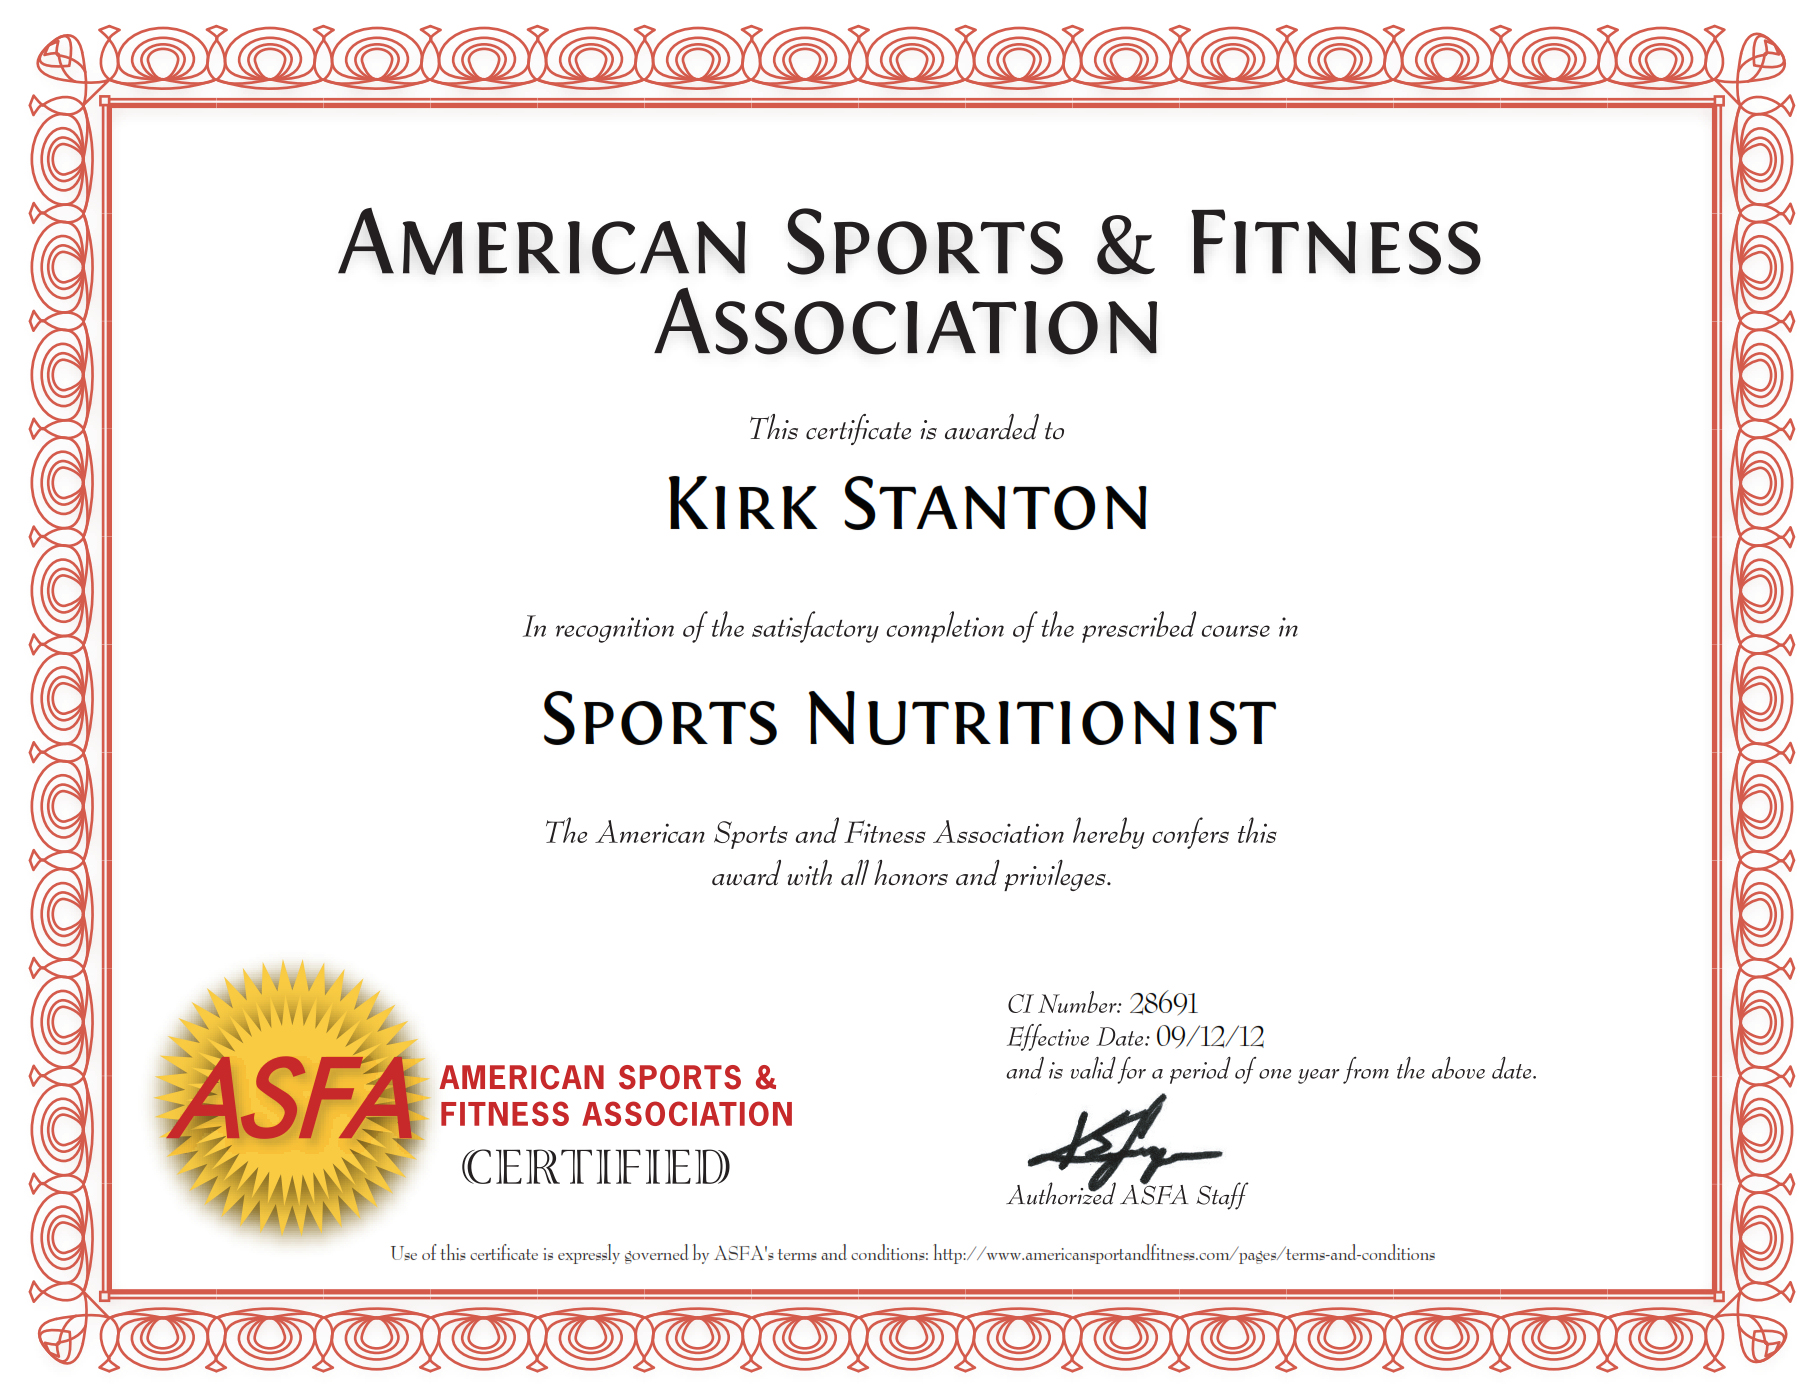 Best boss certificate template gallery certificate design and sports day certificate template image collections templates rawligious religiously following the raw food lifestyle see certificate xflitez Image collections